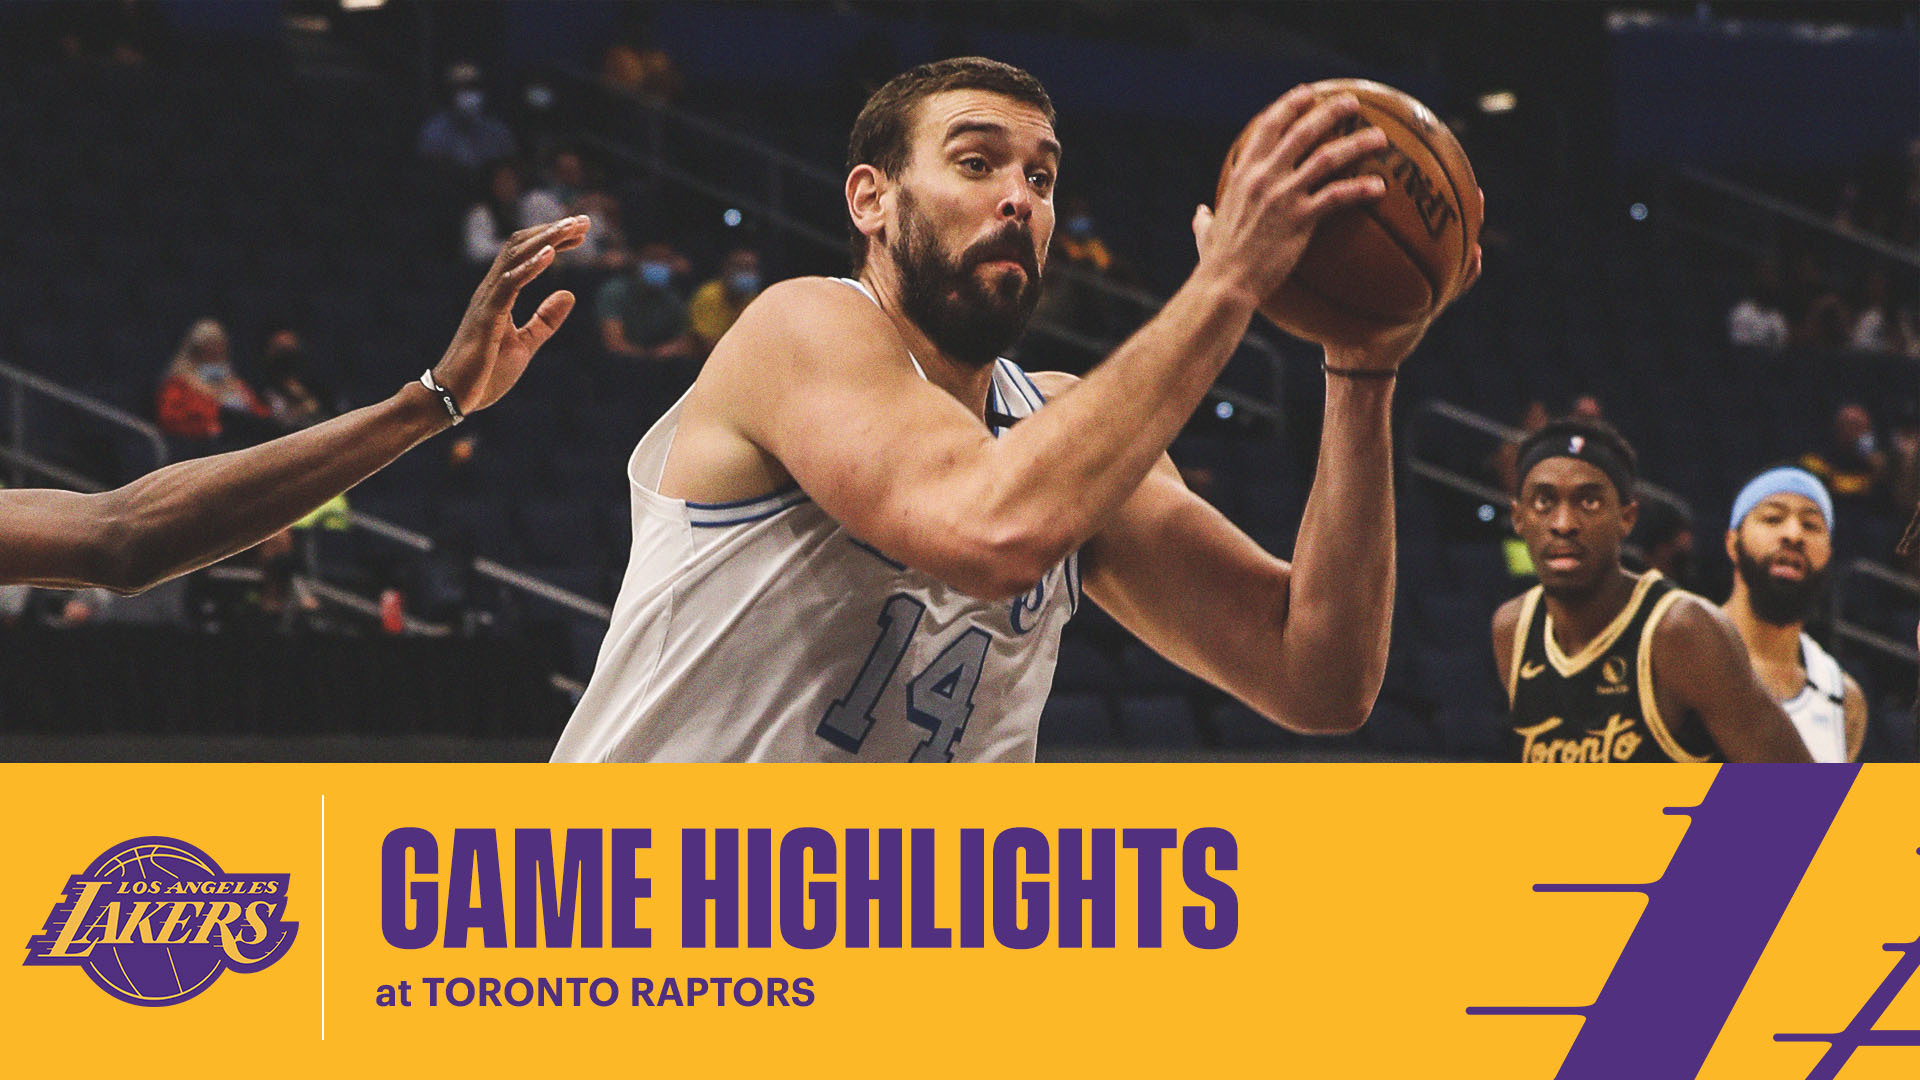 HIGHLIGHTS | Marc Gasol (13 pts, 9 reb, 4 blk) at Toronto Raptors